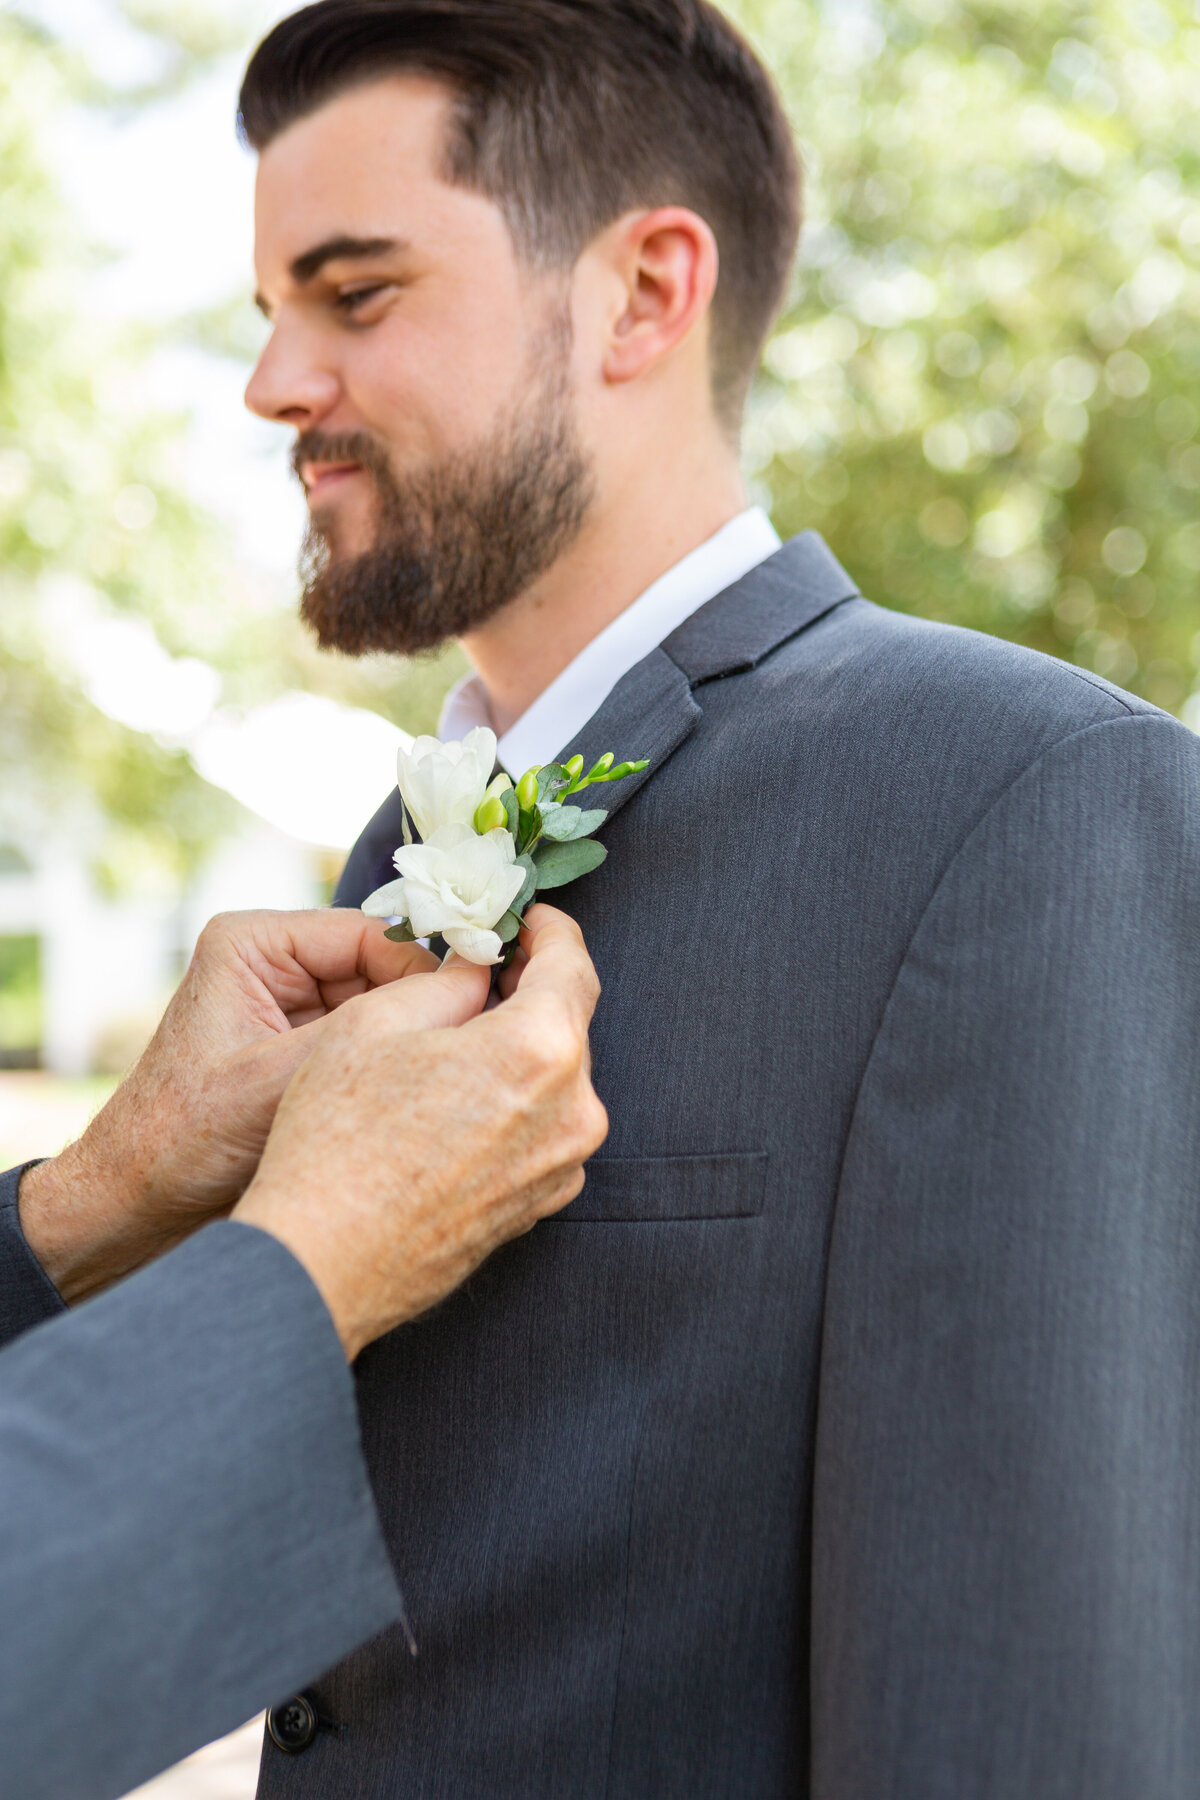 Dad Pinning Boutonnière on Groom